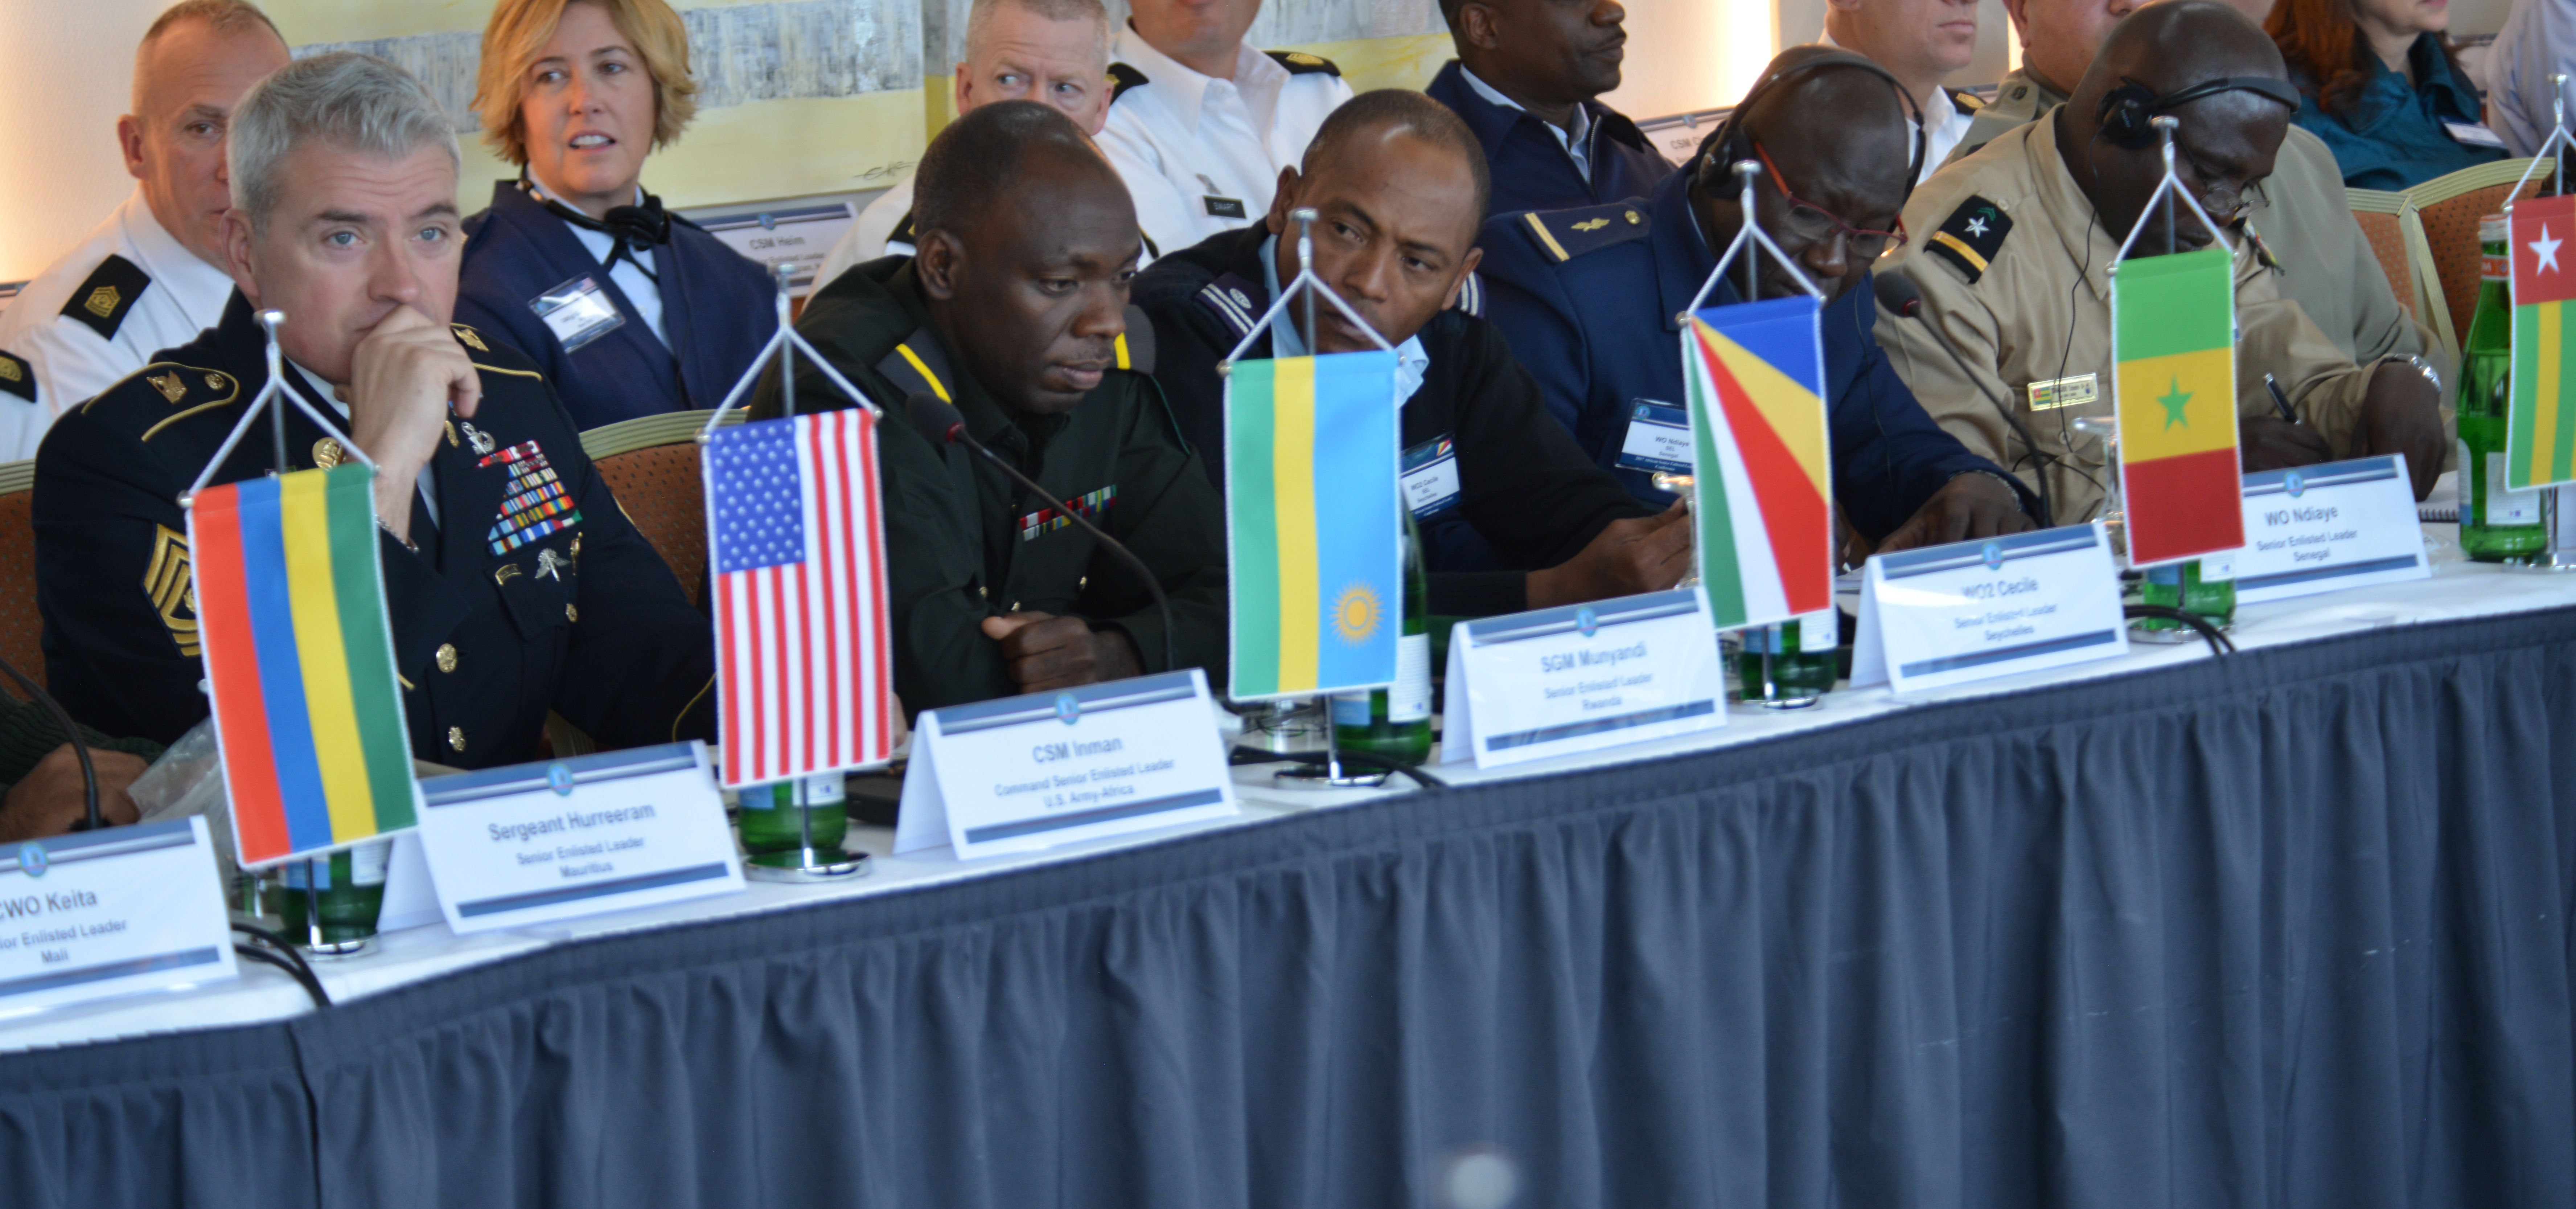 GRAINAU, Germany - U.S. and African Partners participate in the first ever U.S. Africa Command hosted Africa Senior Enlisted Leader Conference, at in Grainau, Germany Nov. 6-10. The conference brought together Senior Enlisted Leaders from more than 20 African nations and the U.S. to discuss shared challenges and opportunities.